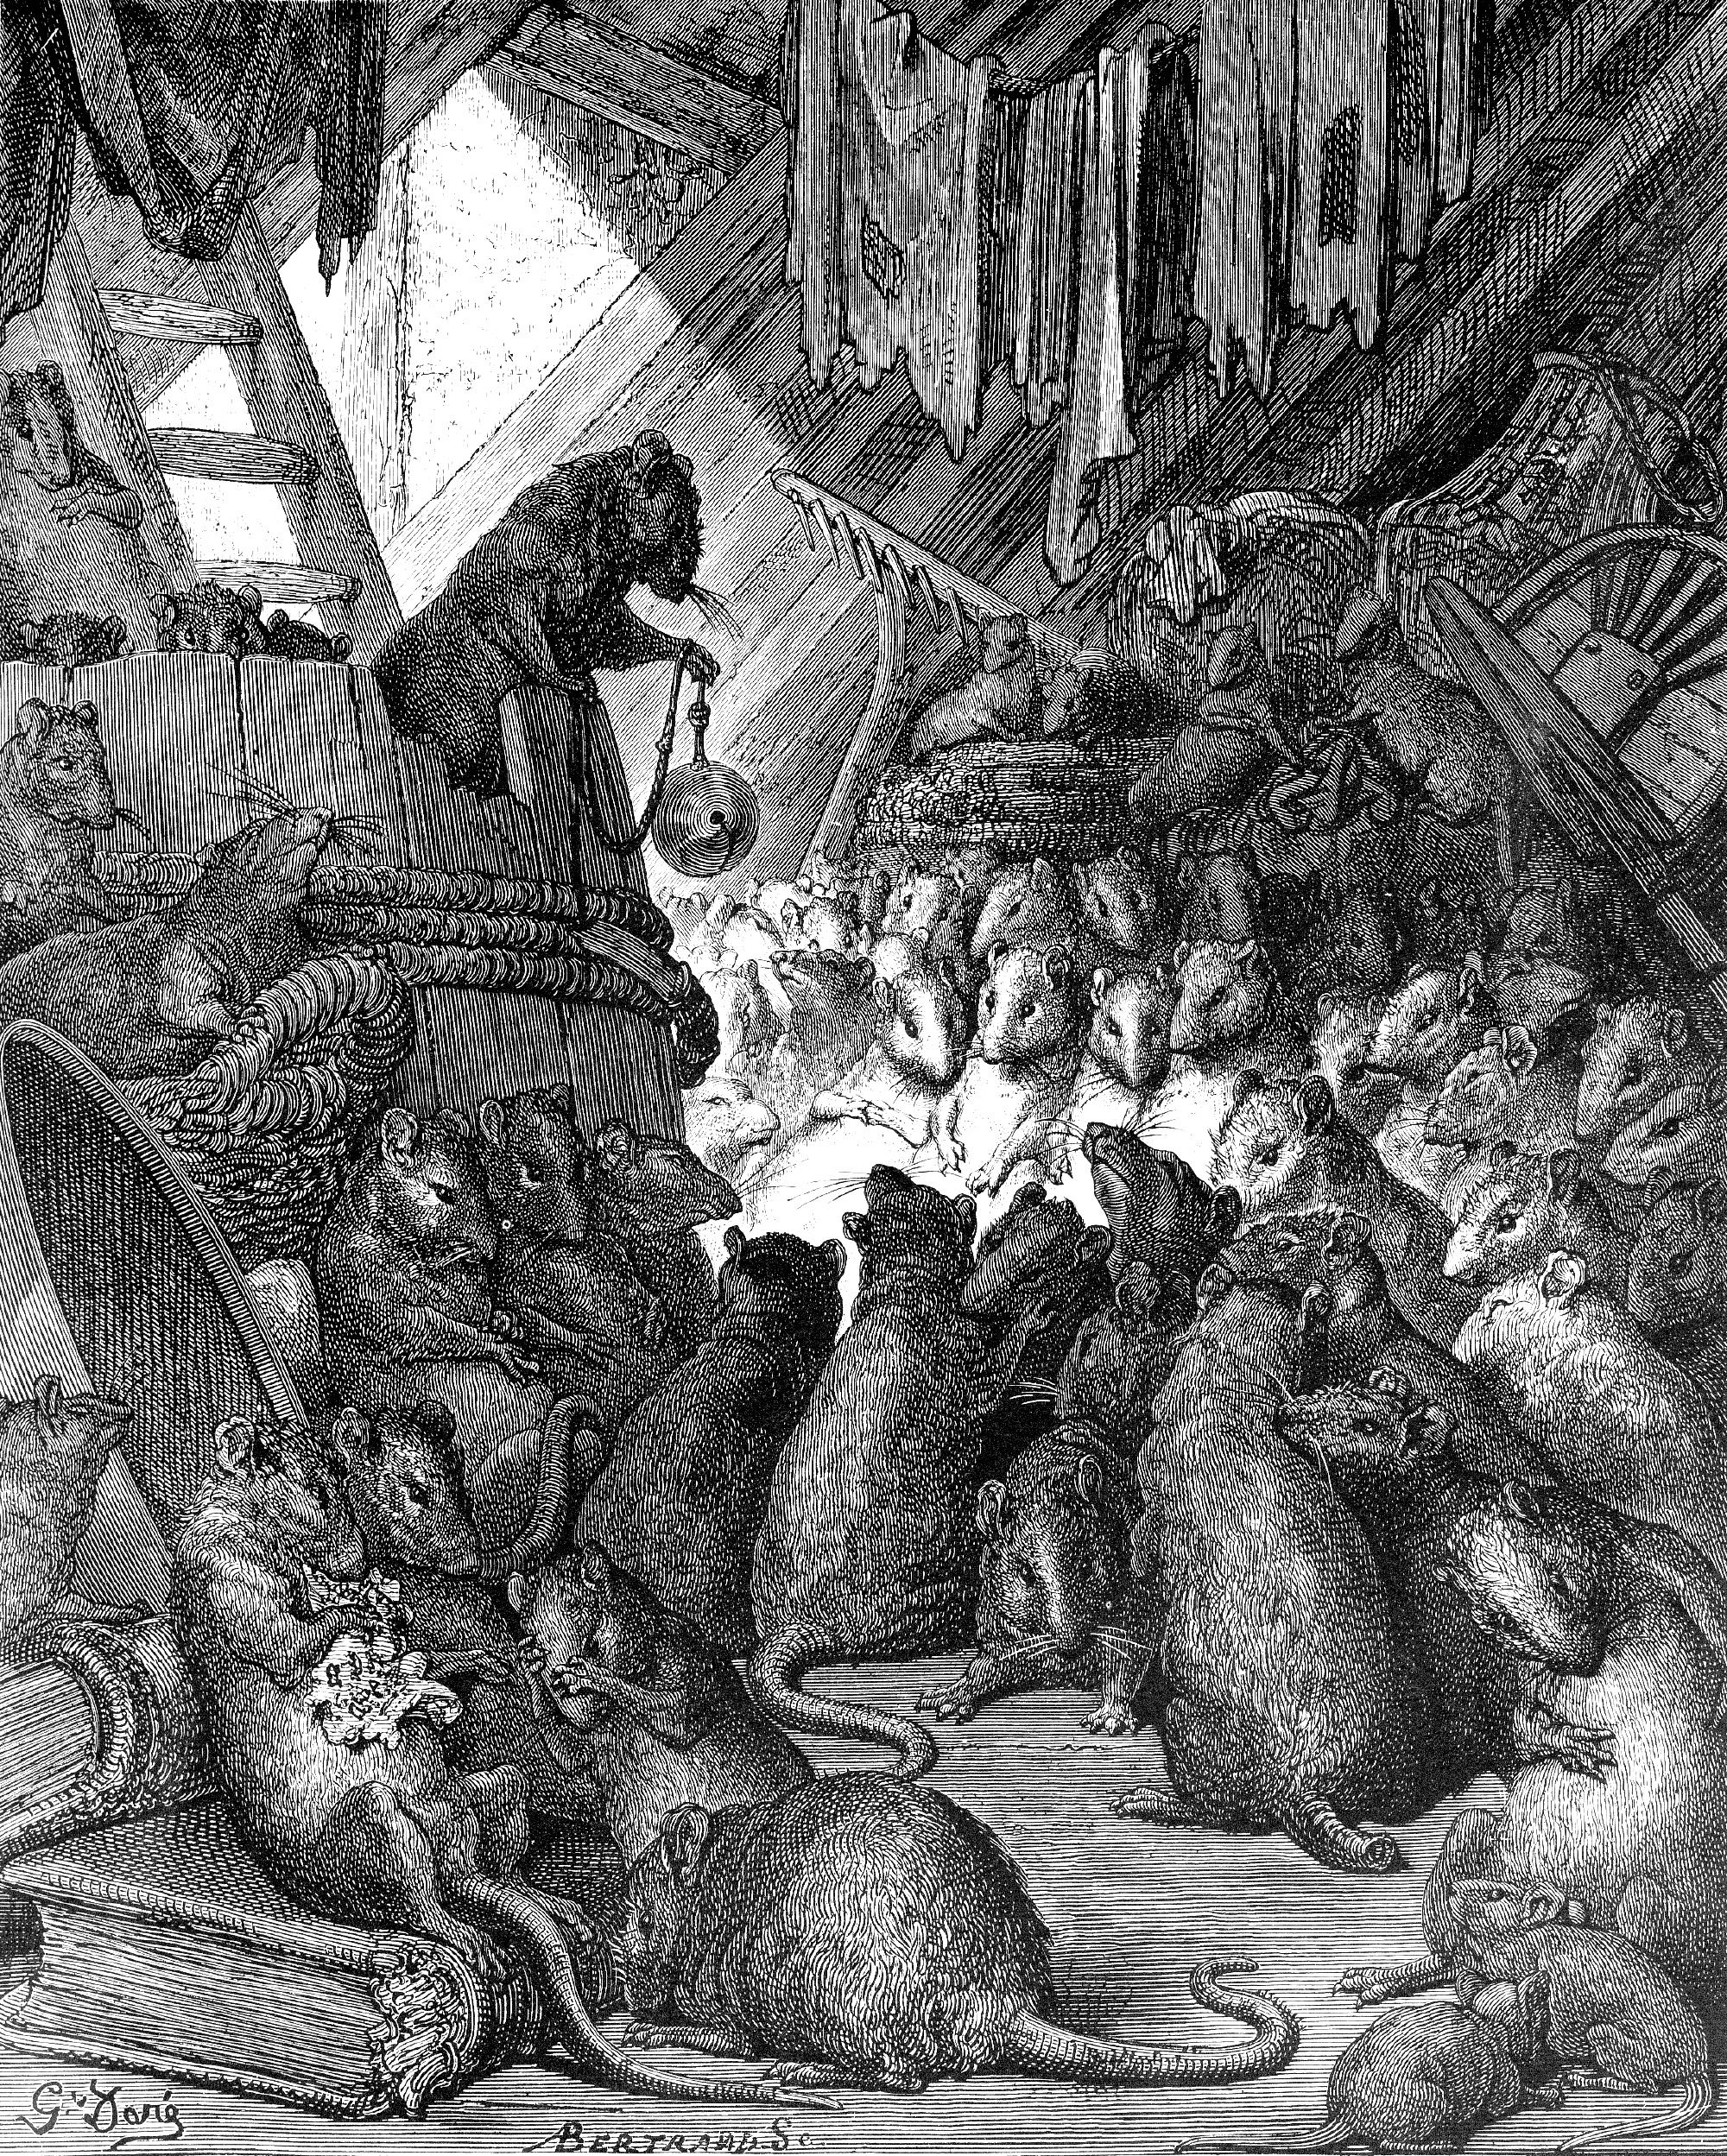 The rat council, Gustave Dore As the story (ascribed to